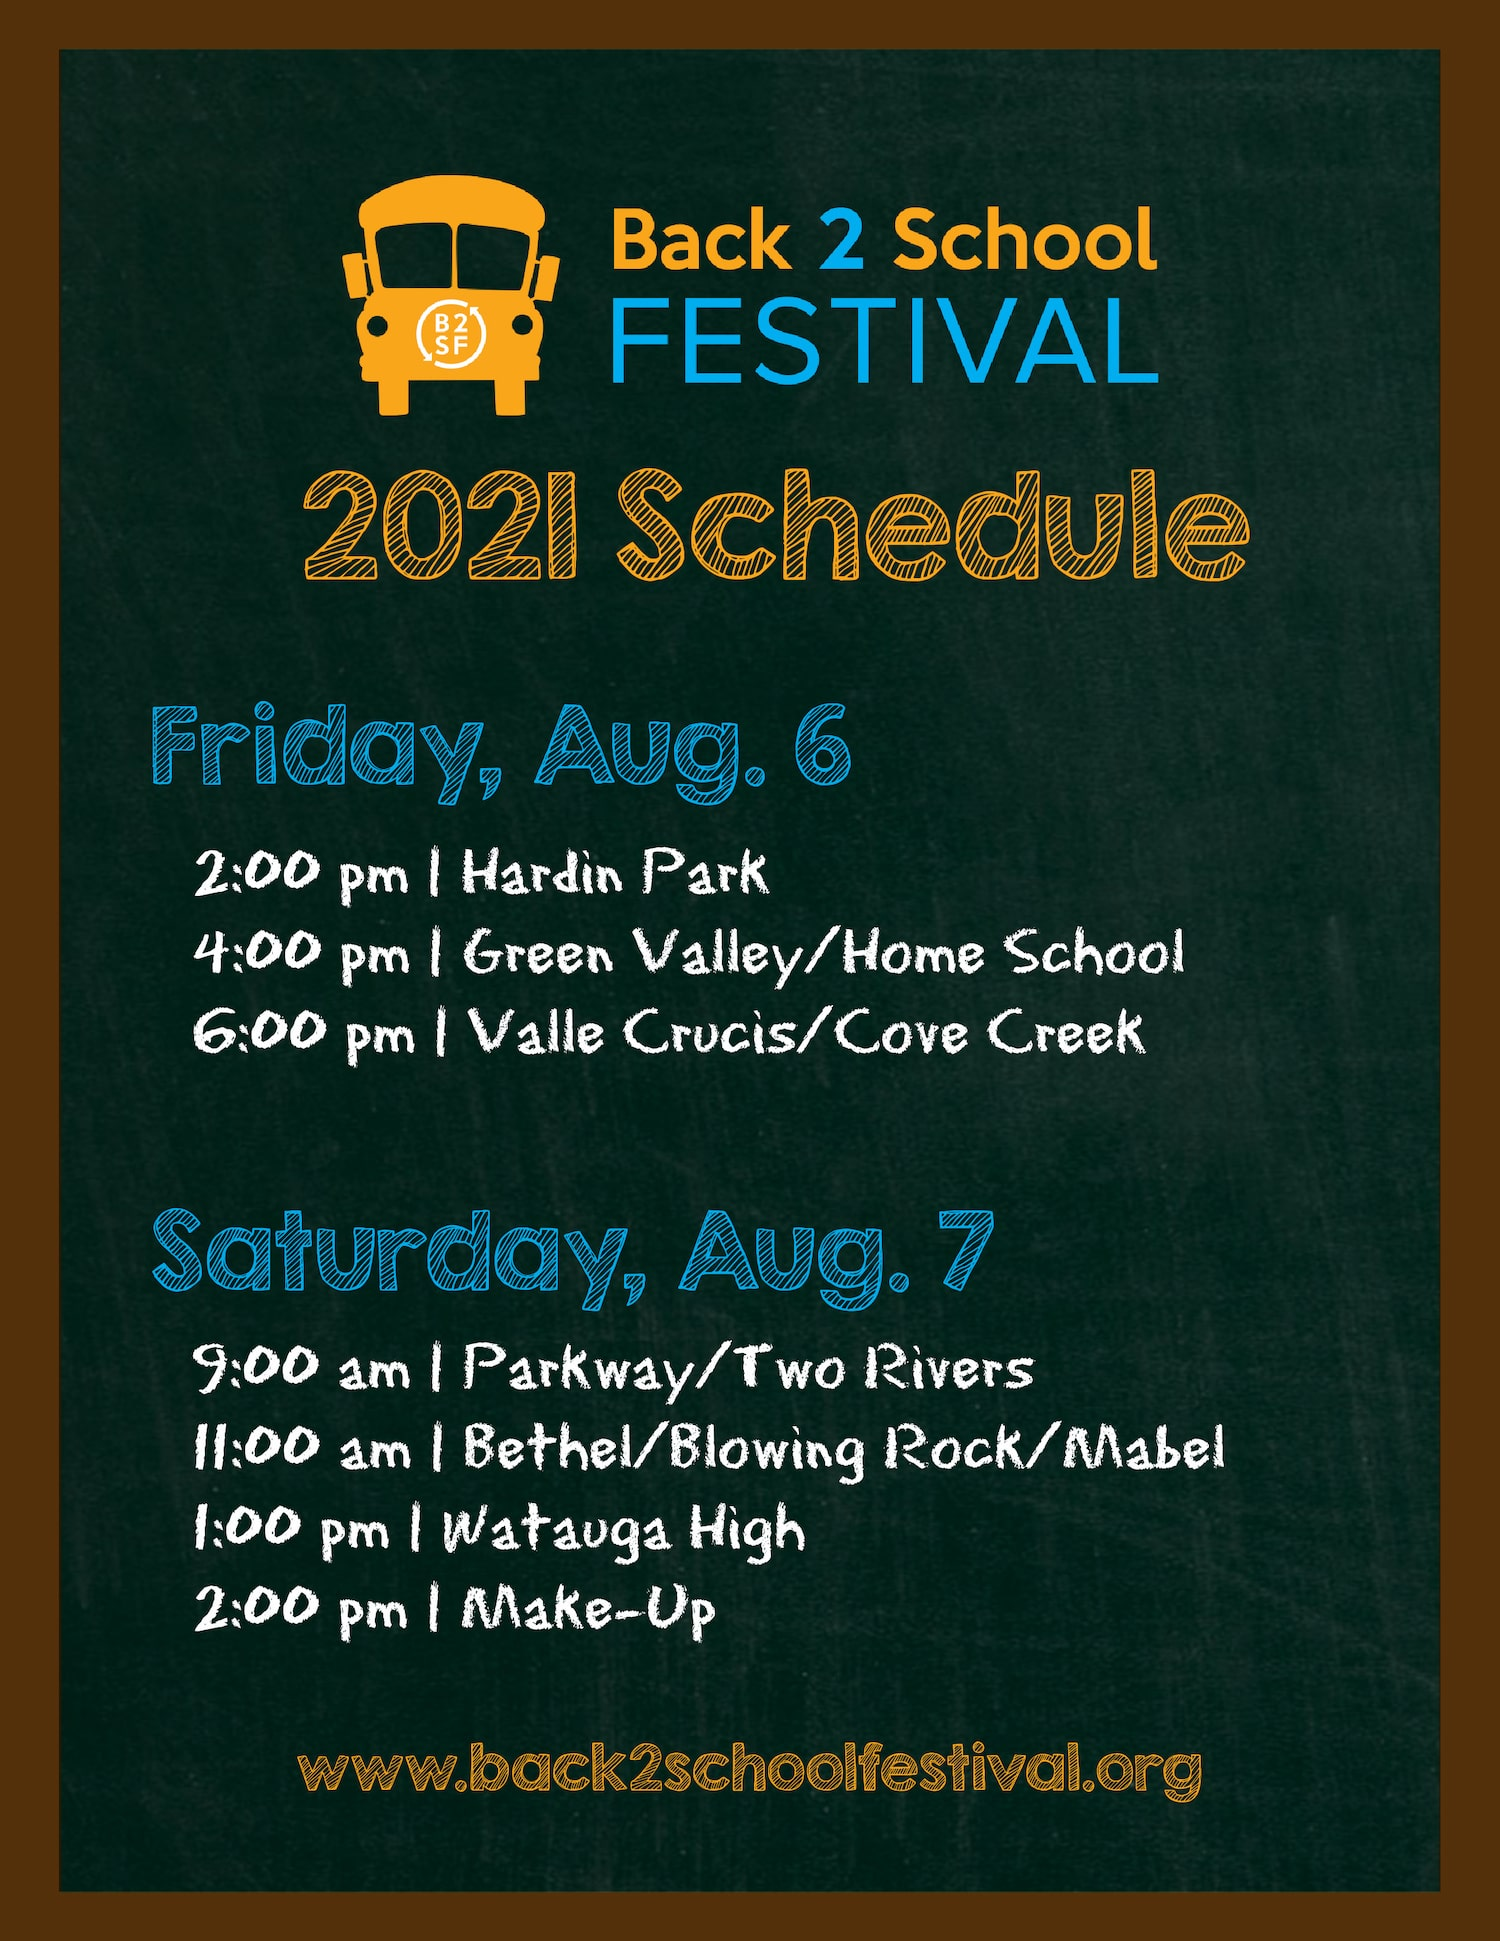 Annual Back 2 School Festival to be Held Aug. 6-7, 2021